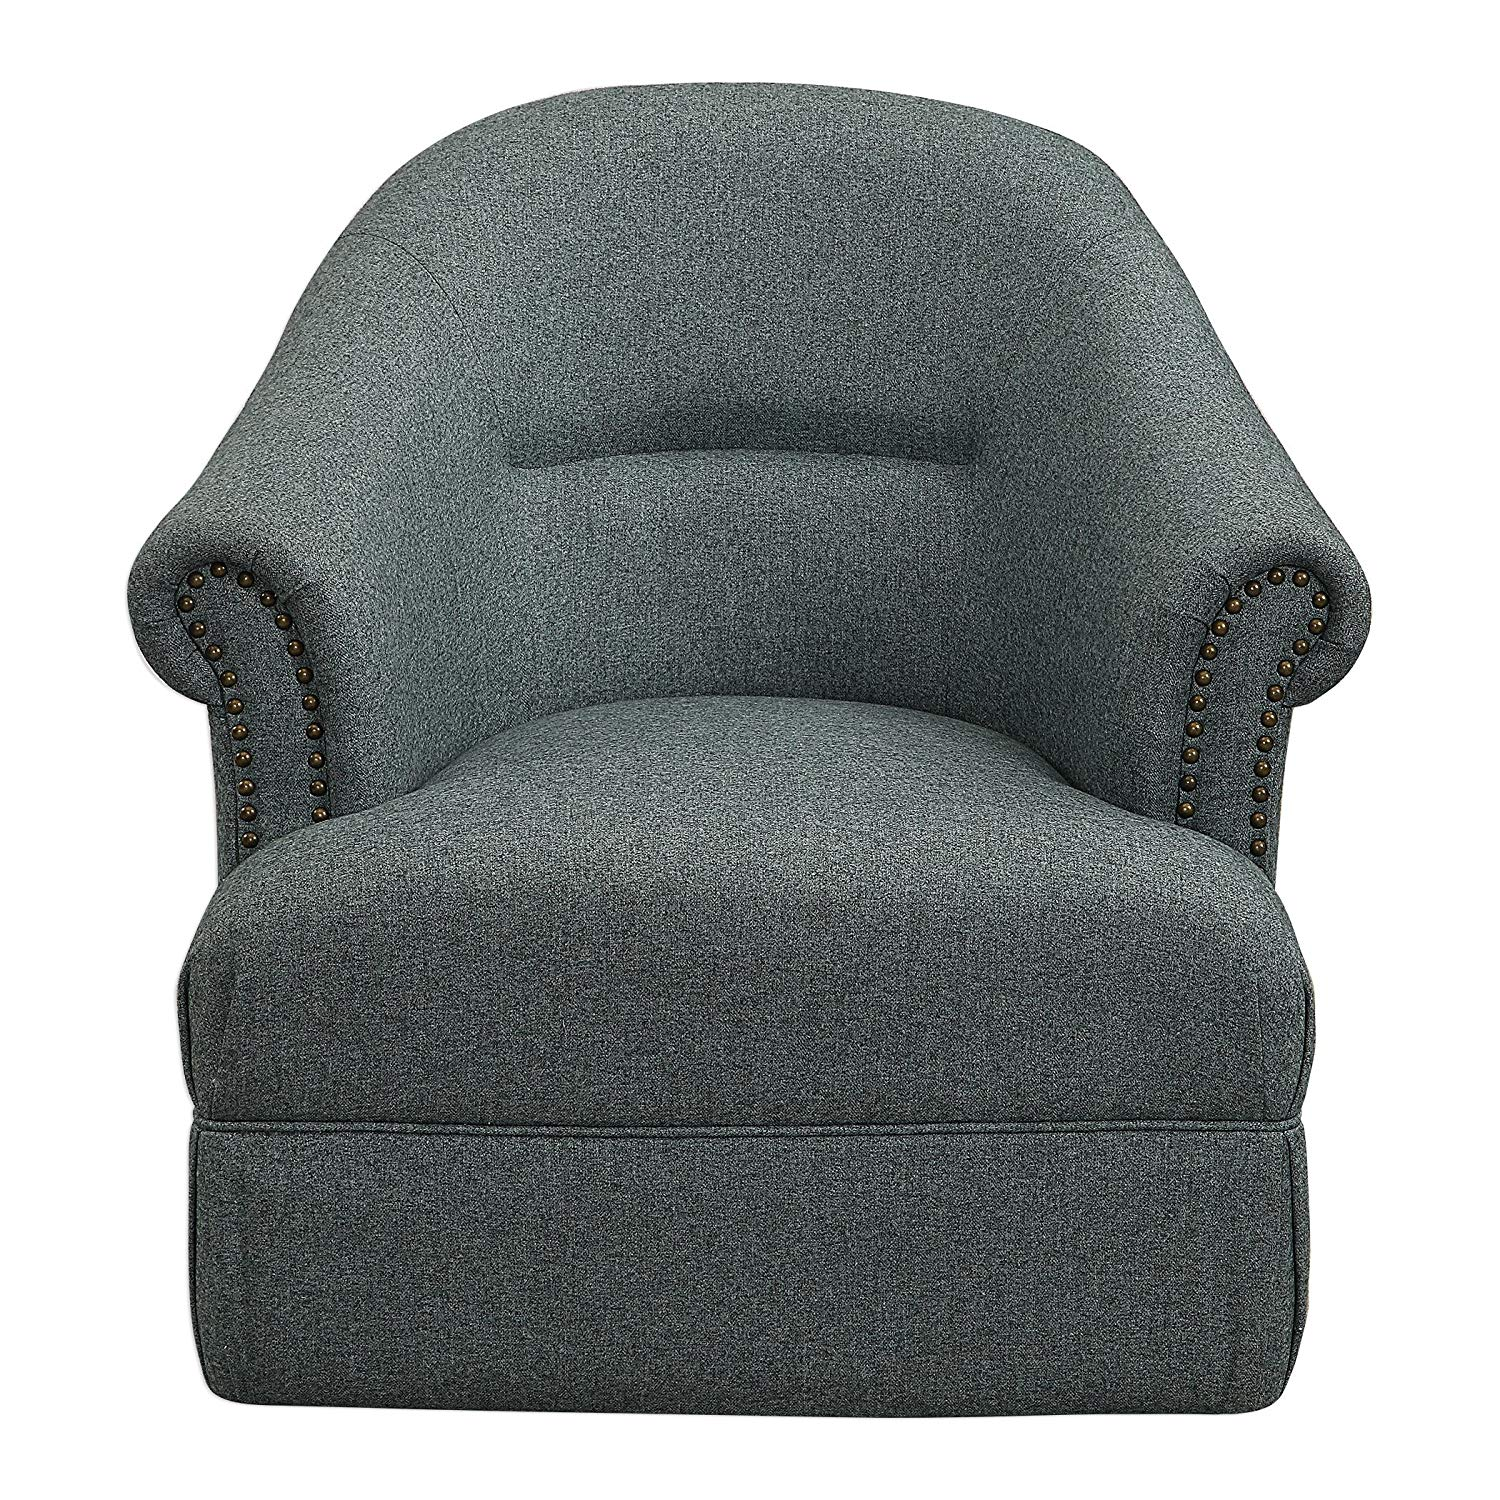 Cheap Tub Swivel Chair Find Tub Swivel Chair Deals On Line